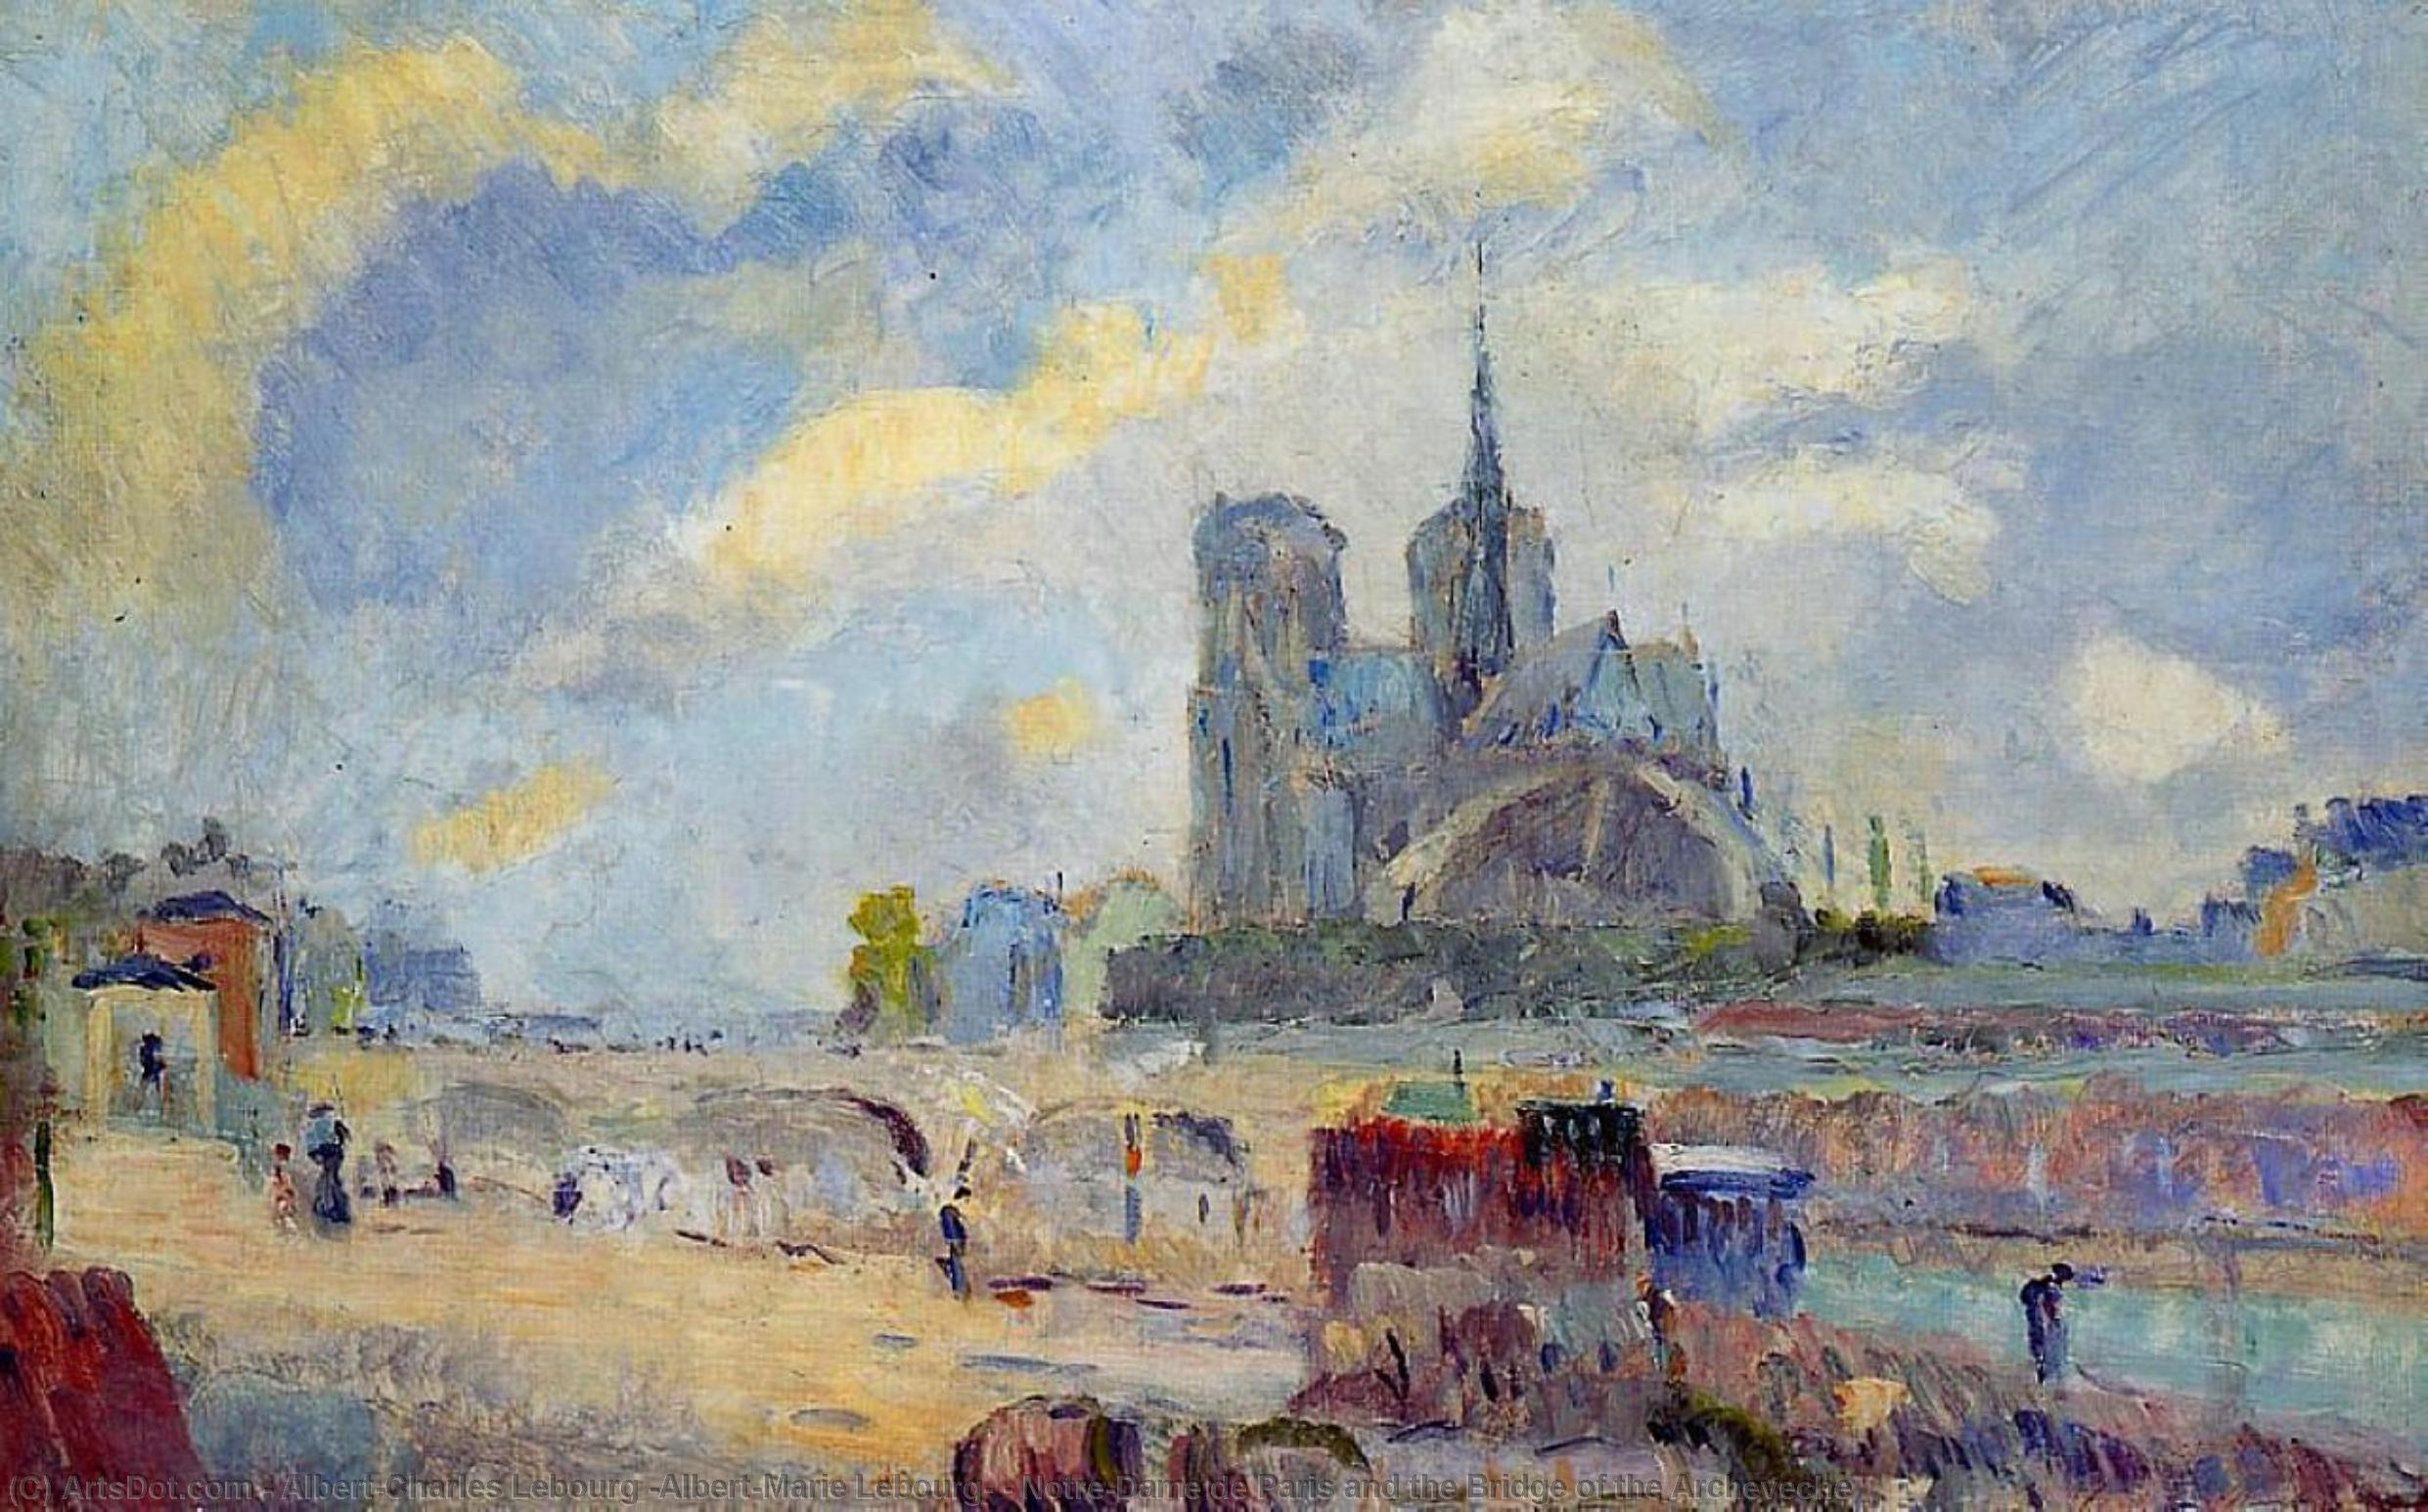 Notre-Dame de Paris and the Bridge of the Archeveche by Albert-Charles Lebourg (Albert-Marie Lebourg) (1849-1928, France) | Reproductions Albert-Charles Lebourg (Albert-Marie Lebourg) | ArtsDot.com